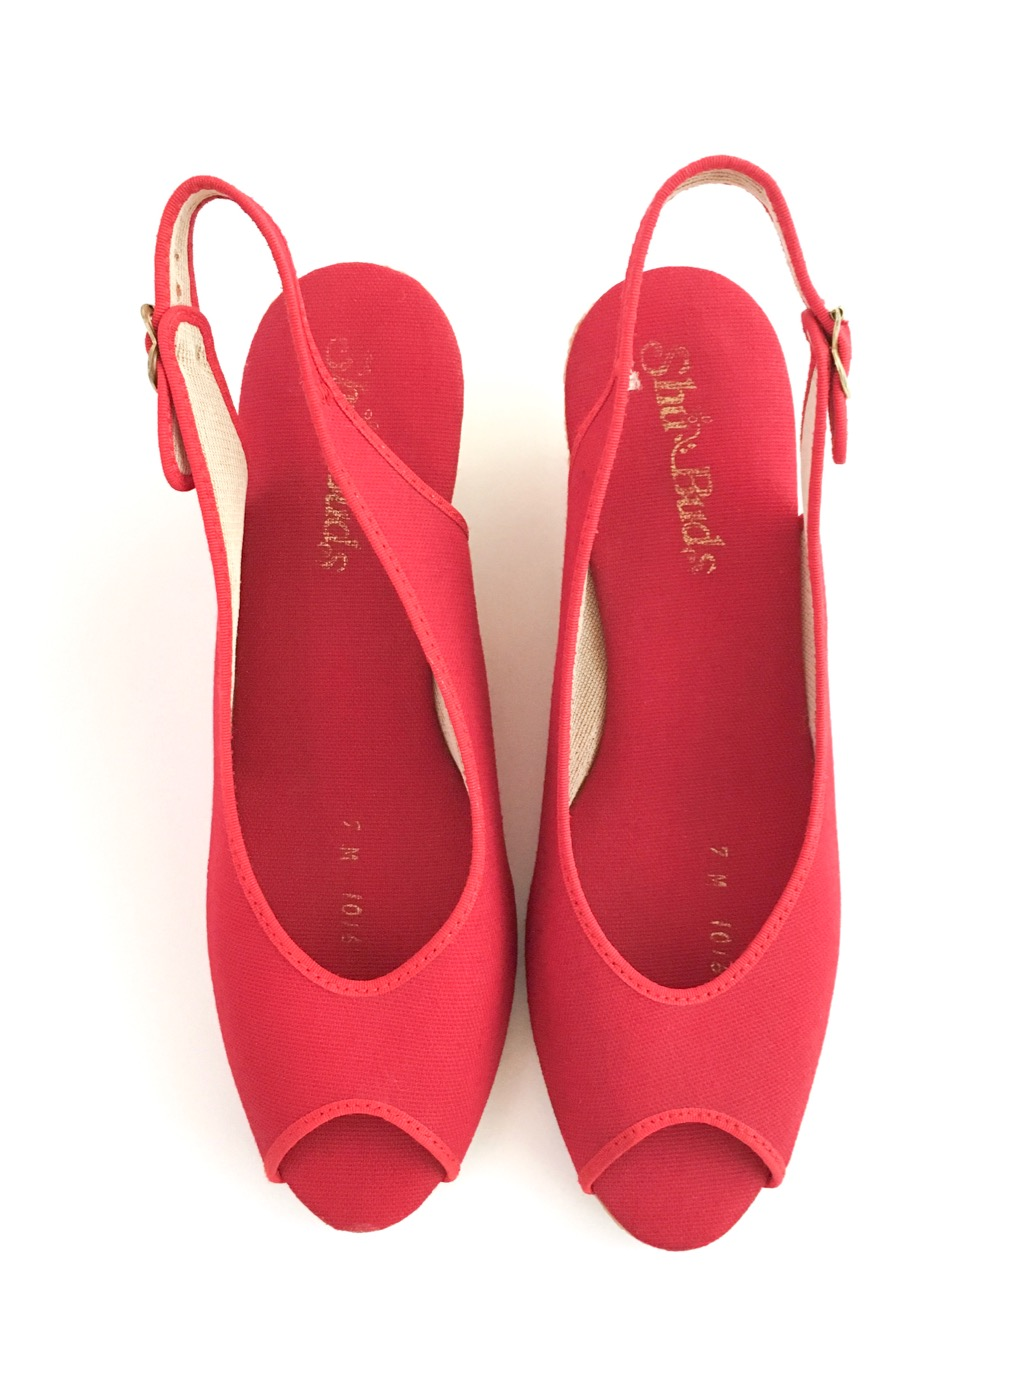 1970s red espadrille shoes sandals with woven straw wedges